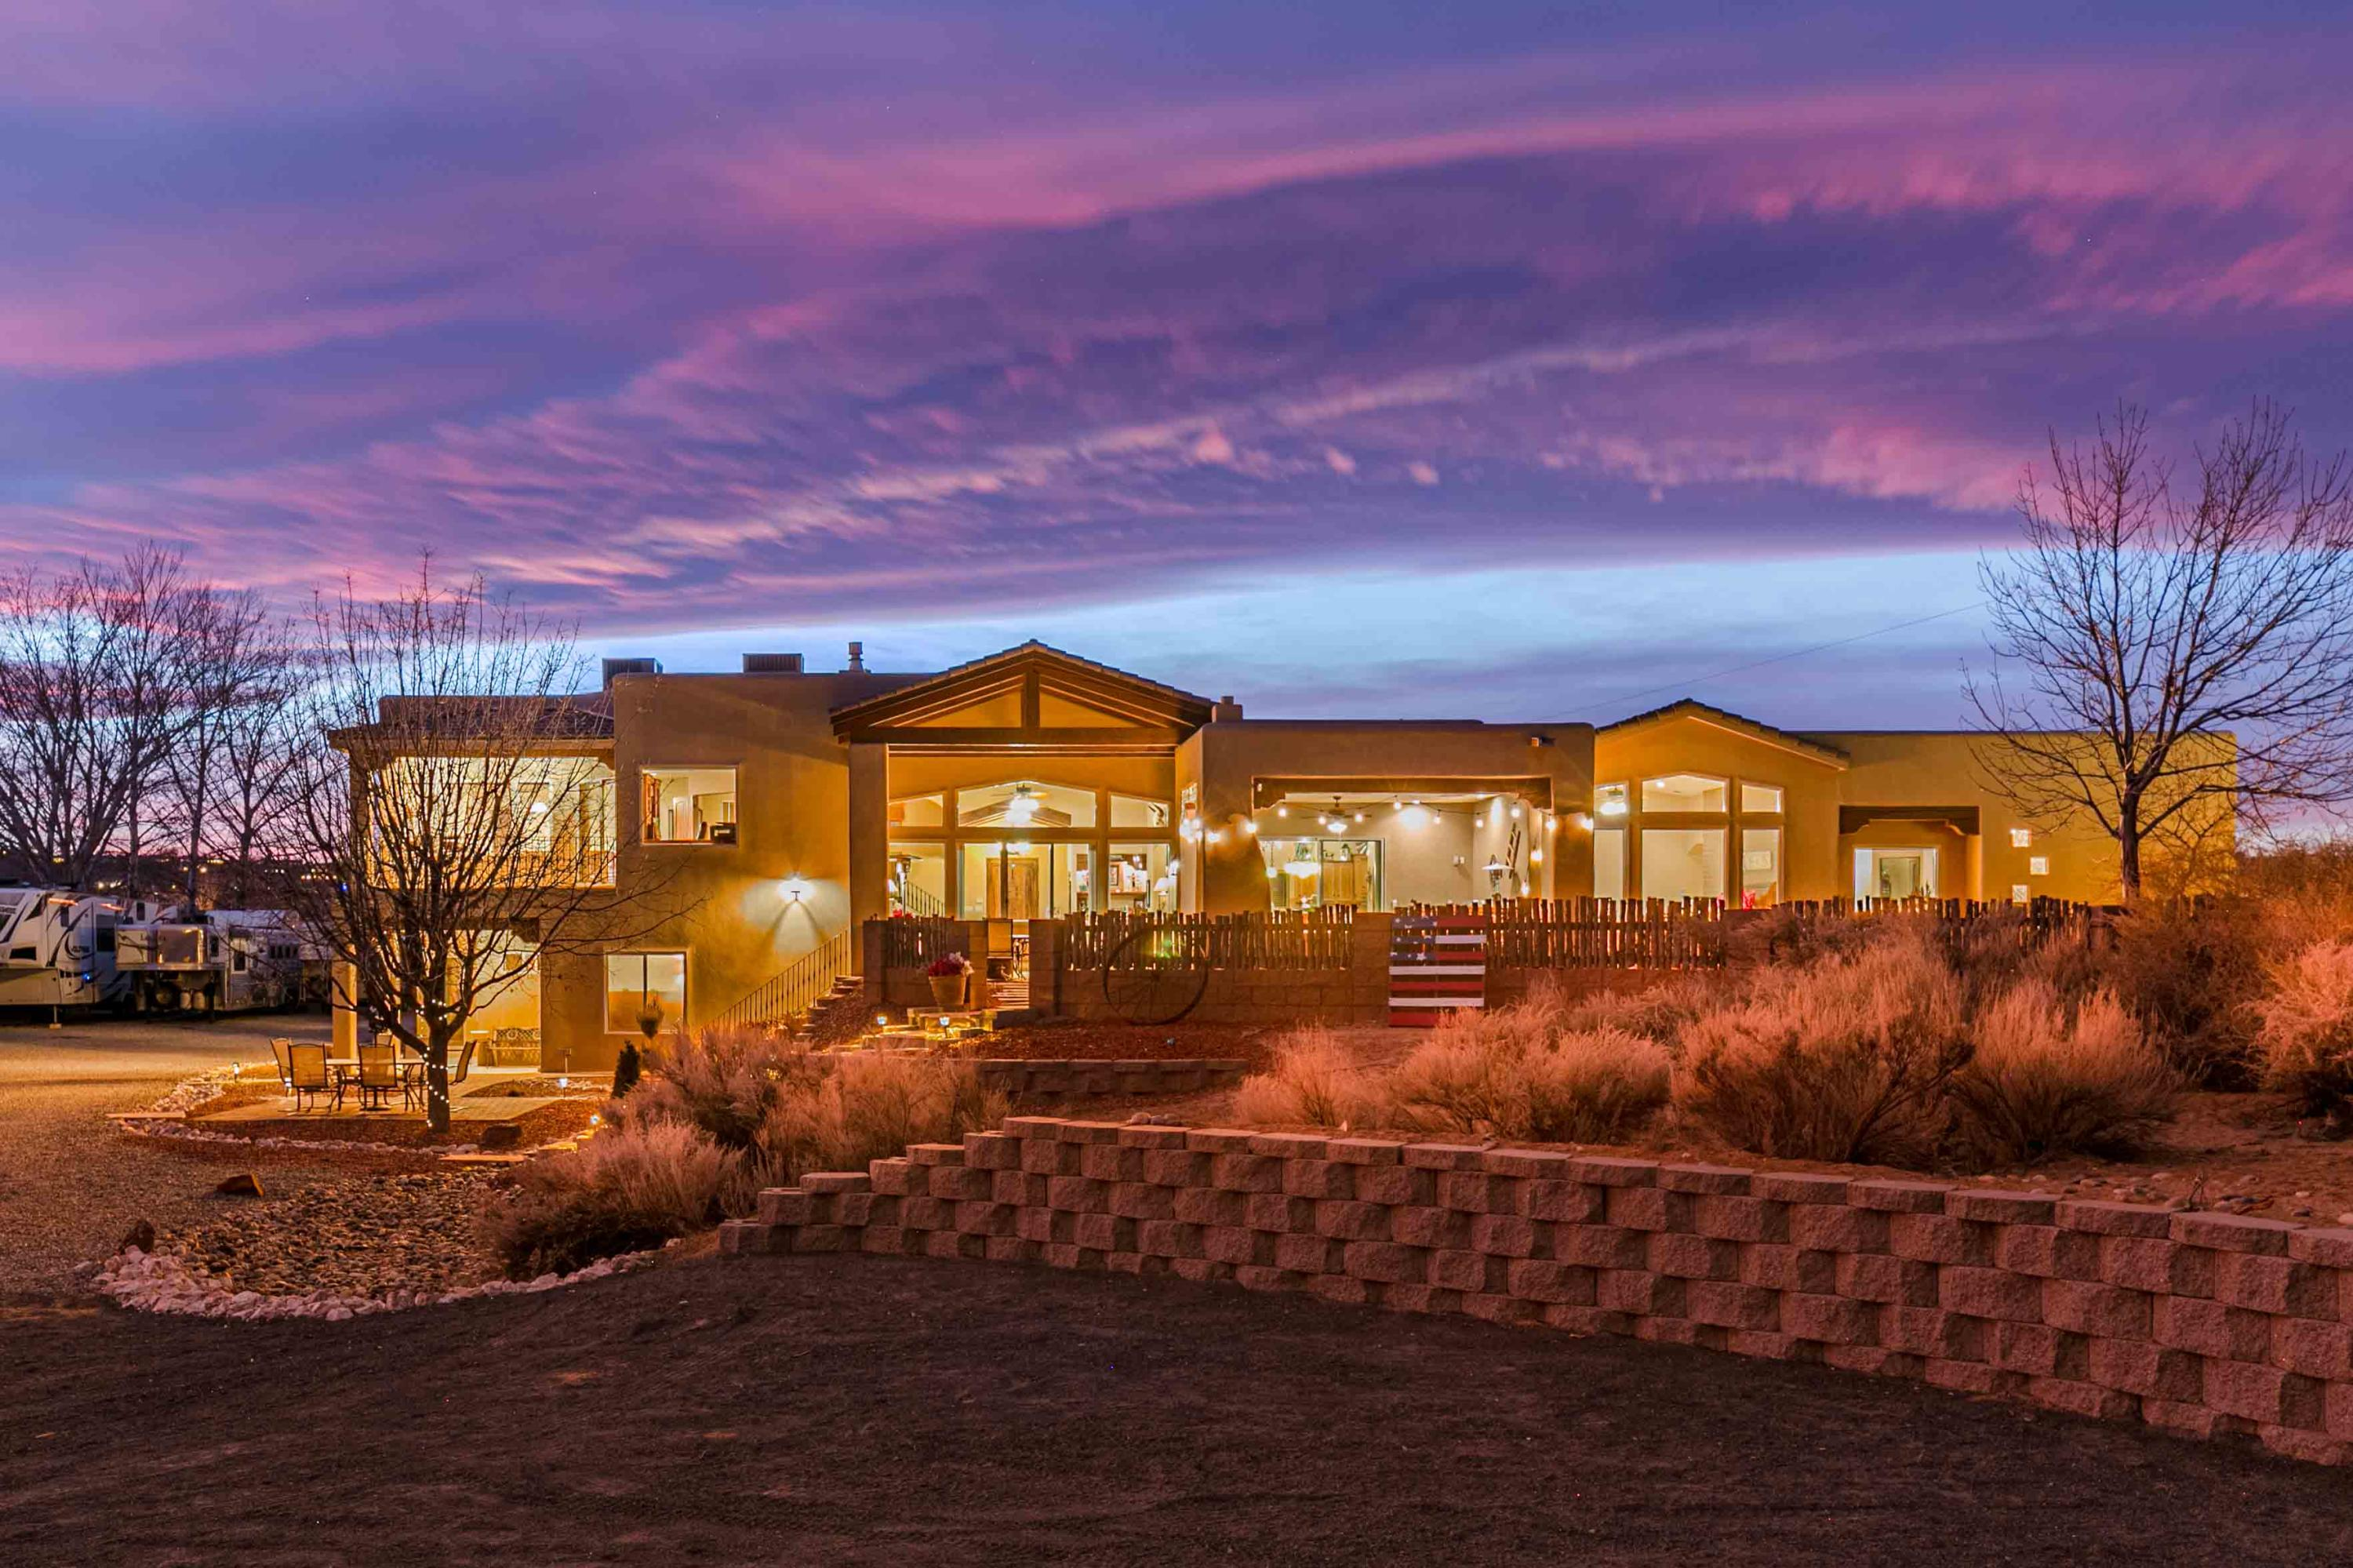 This exquisite smart home is located on a tranquil cul-de-sacin Corrales. A sophisticated mix of traditional Northern NewMexico architecture with modern comforts. Soaring elegantwood ceilings welcome you into the spacious family room.Breathtaking views of the Sandia mountainsfrom the wall of windows invite you to relax in front ofthe fireplace. Gourmet kitchen located in the center of thehome, making entertaining a delight. Five covered patios, anincredible outdoor kitchen, and recent xeriscaping allow you torelax and take in the panoramic views of the Sandia mountainsand city. Luxurious master suite located on the main floor, dogspa, and artist studio/separate office reflect attention to detailthroughout the home.